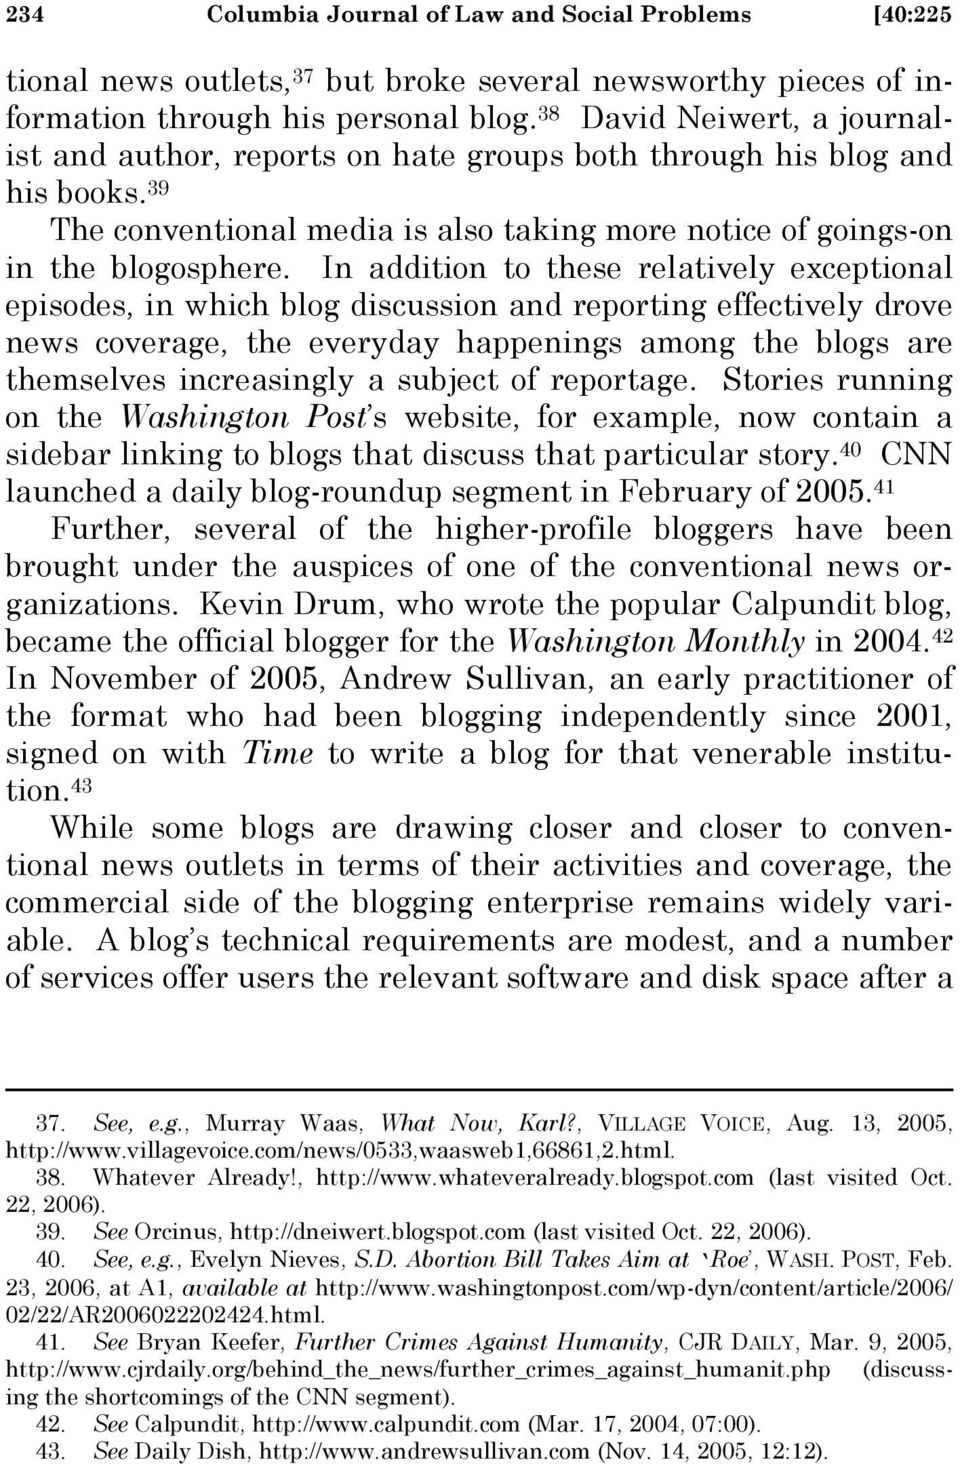 In addition to these relatively exceptional episodes, in which blog discussion and reporting effectively drove news coverage, the everyday happenings among the blogs are themselves increasingly a